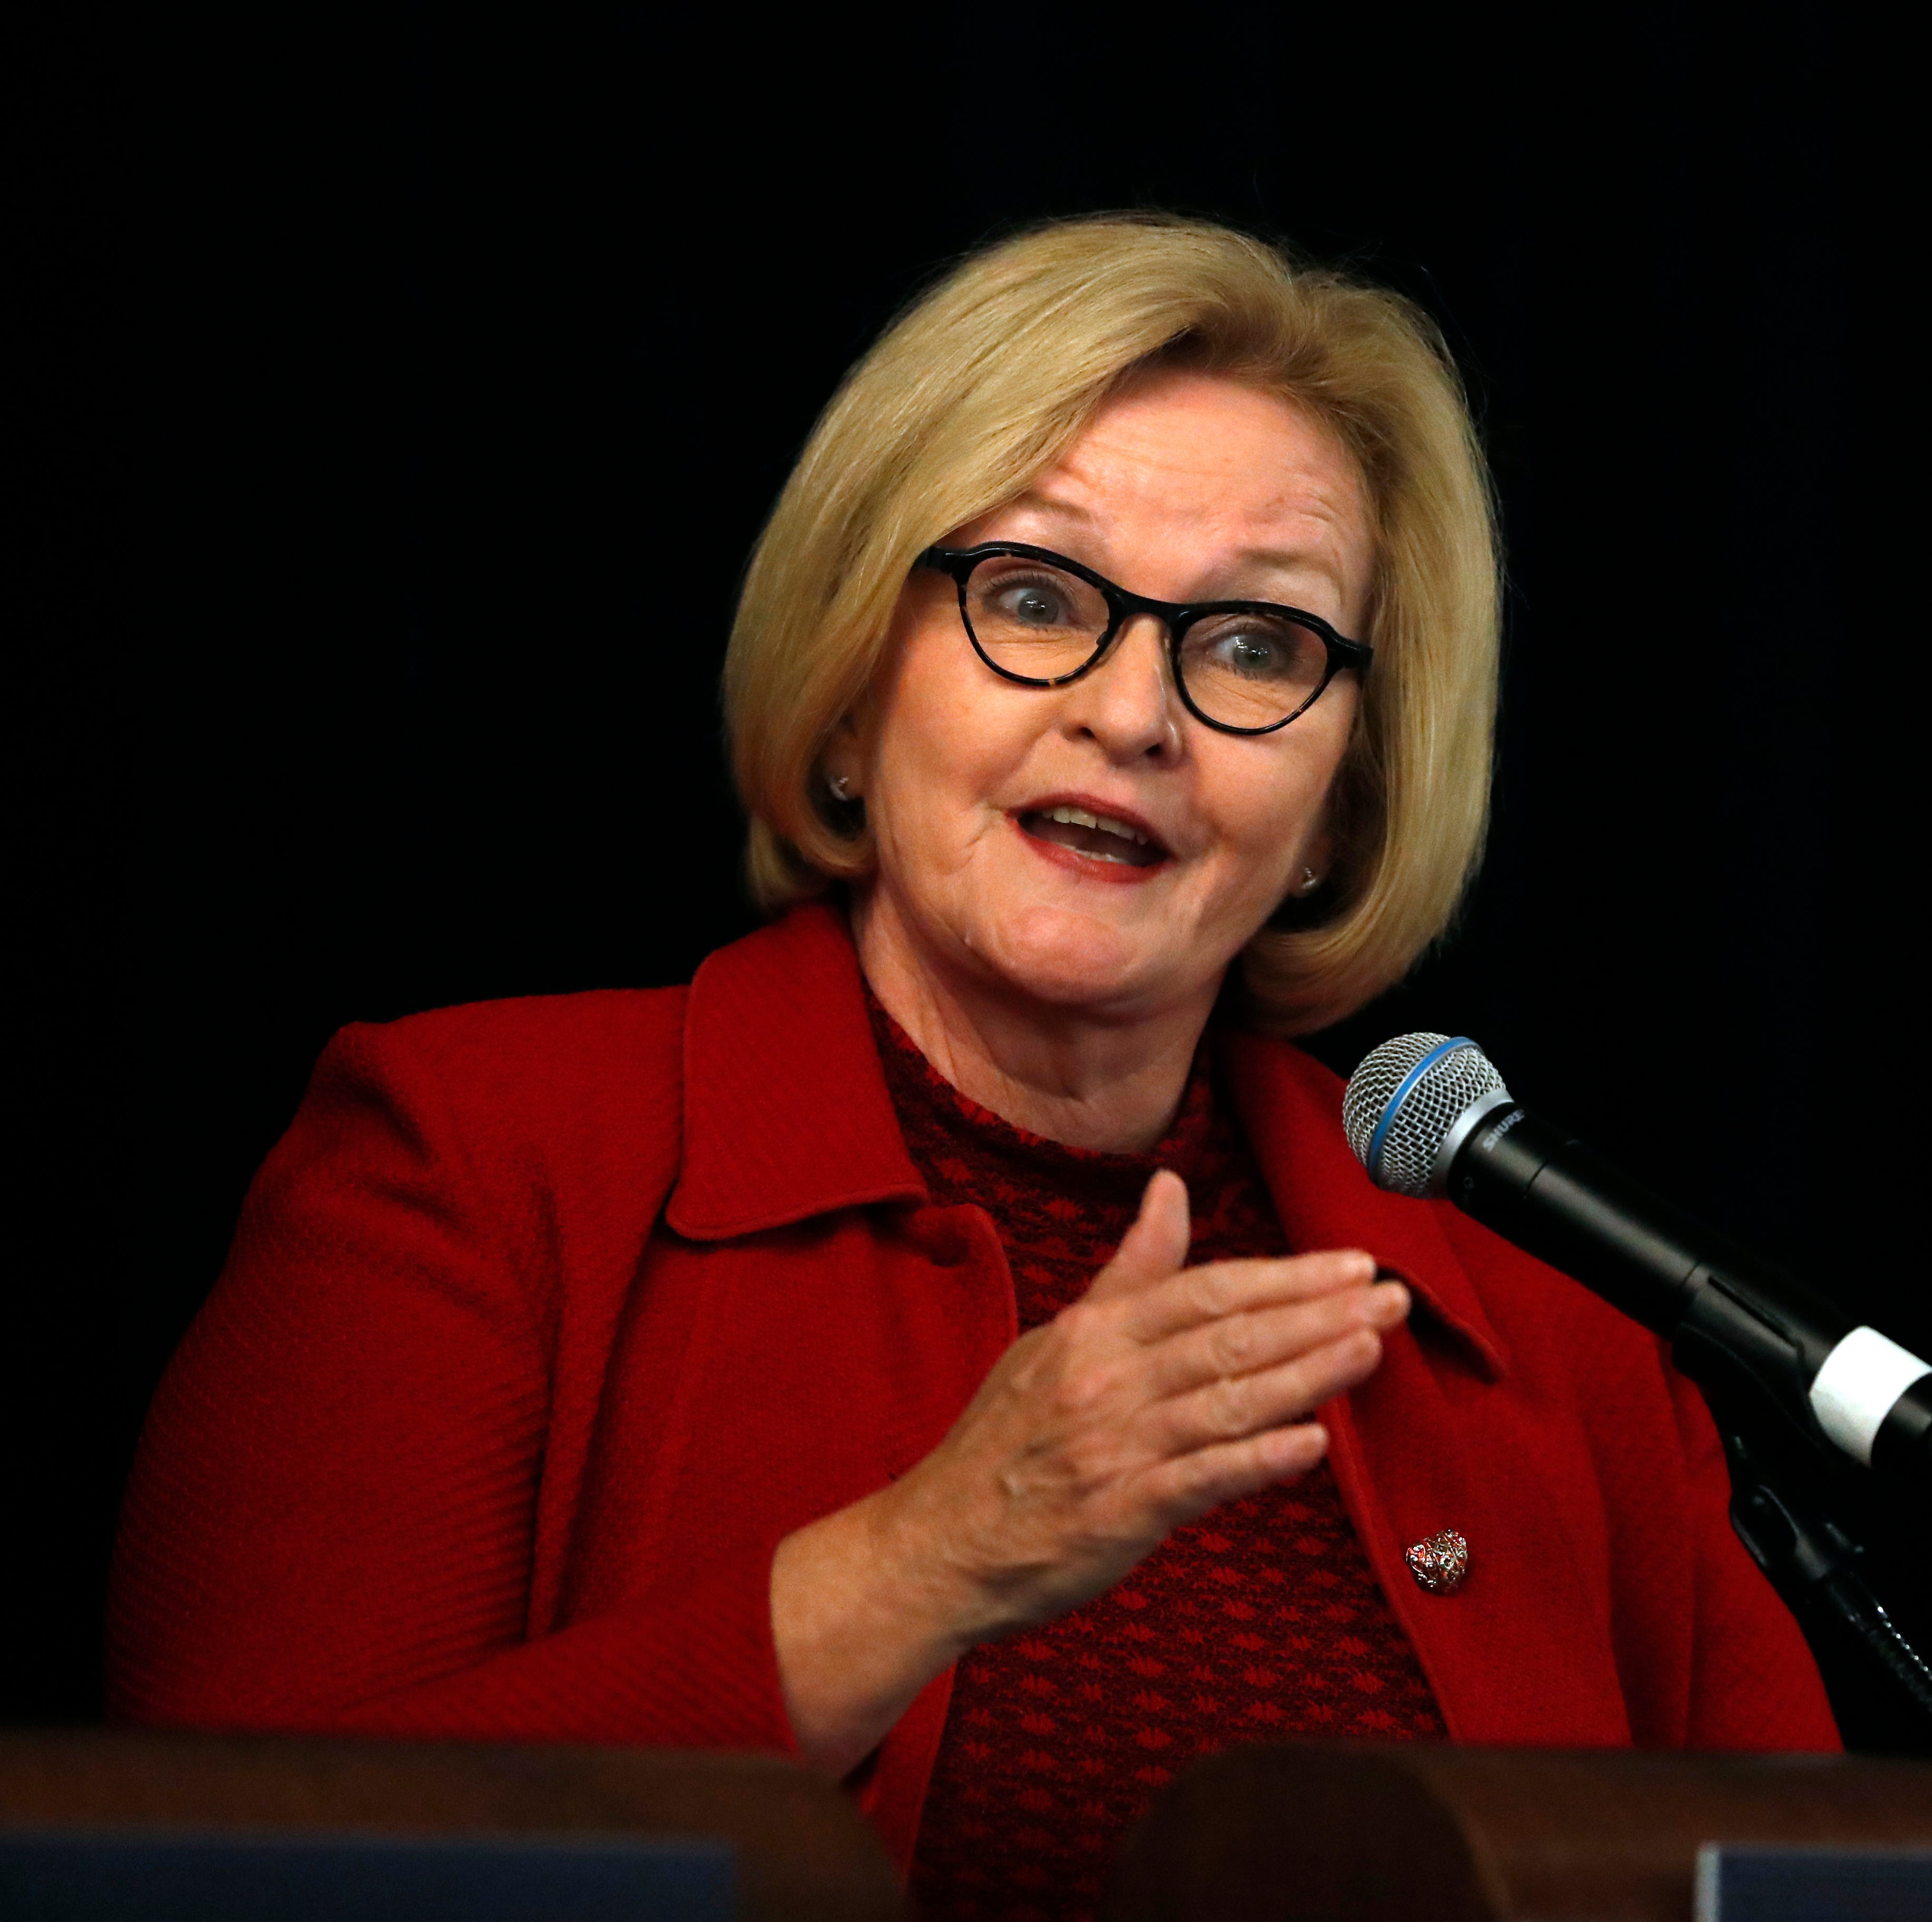 McCaskill on sexual assault allegations against Brett Kavanaugh: I will 'set them aside'